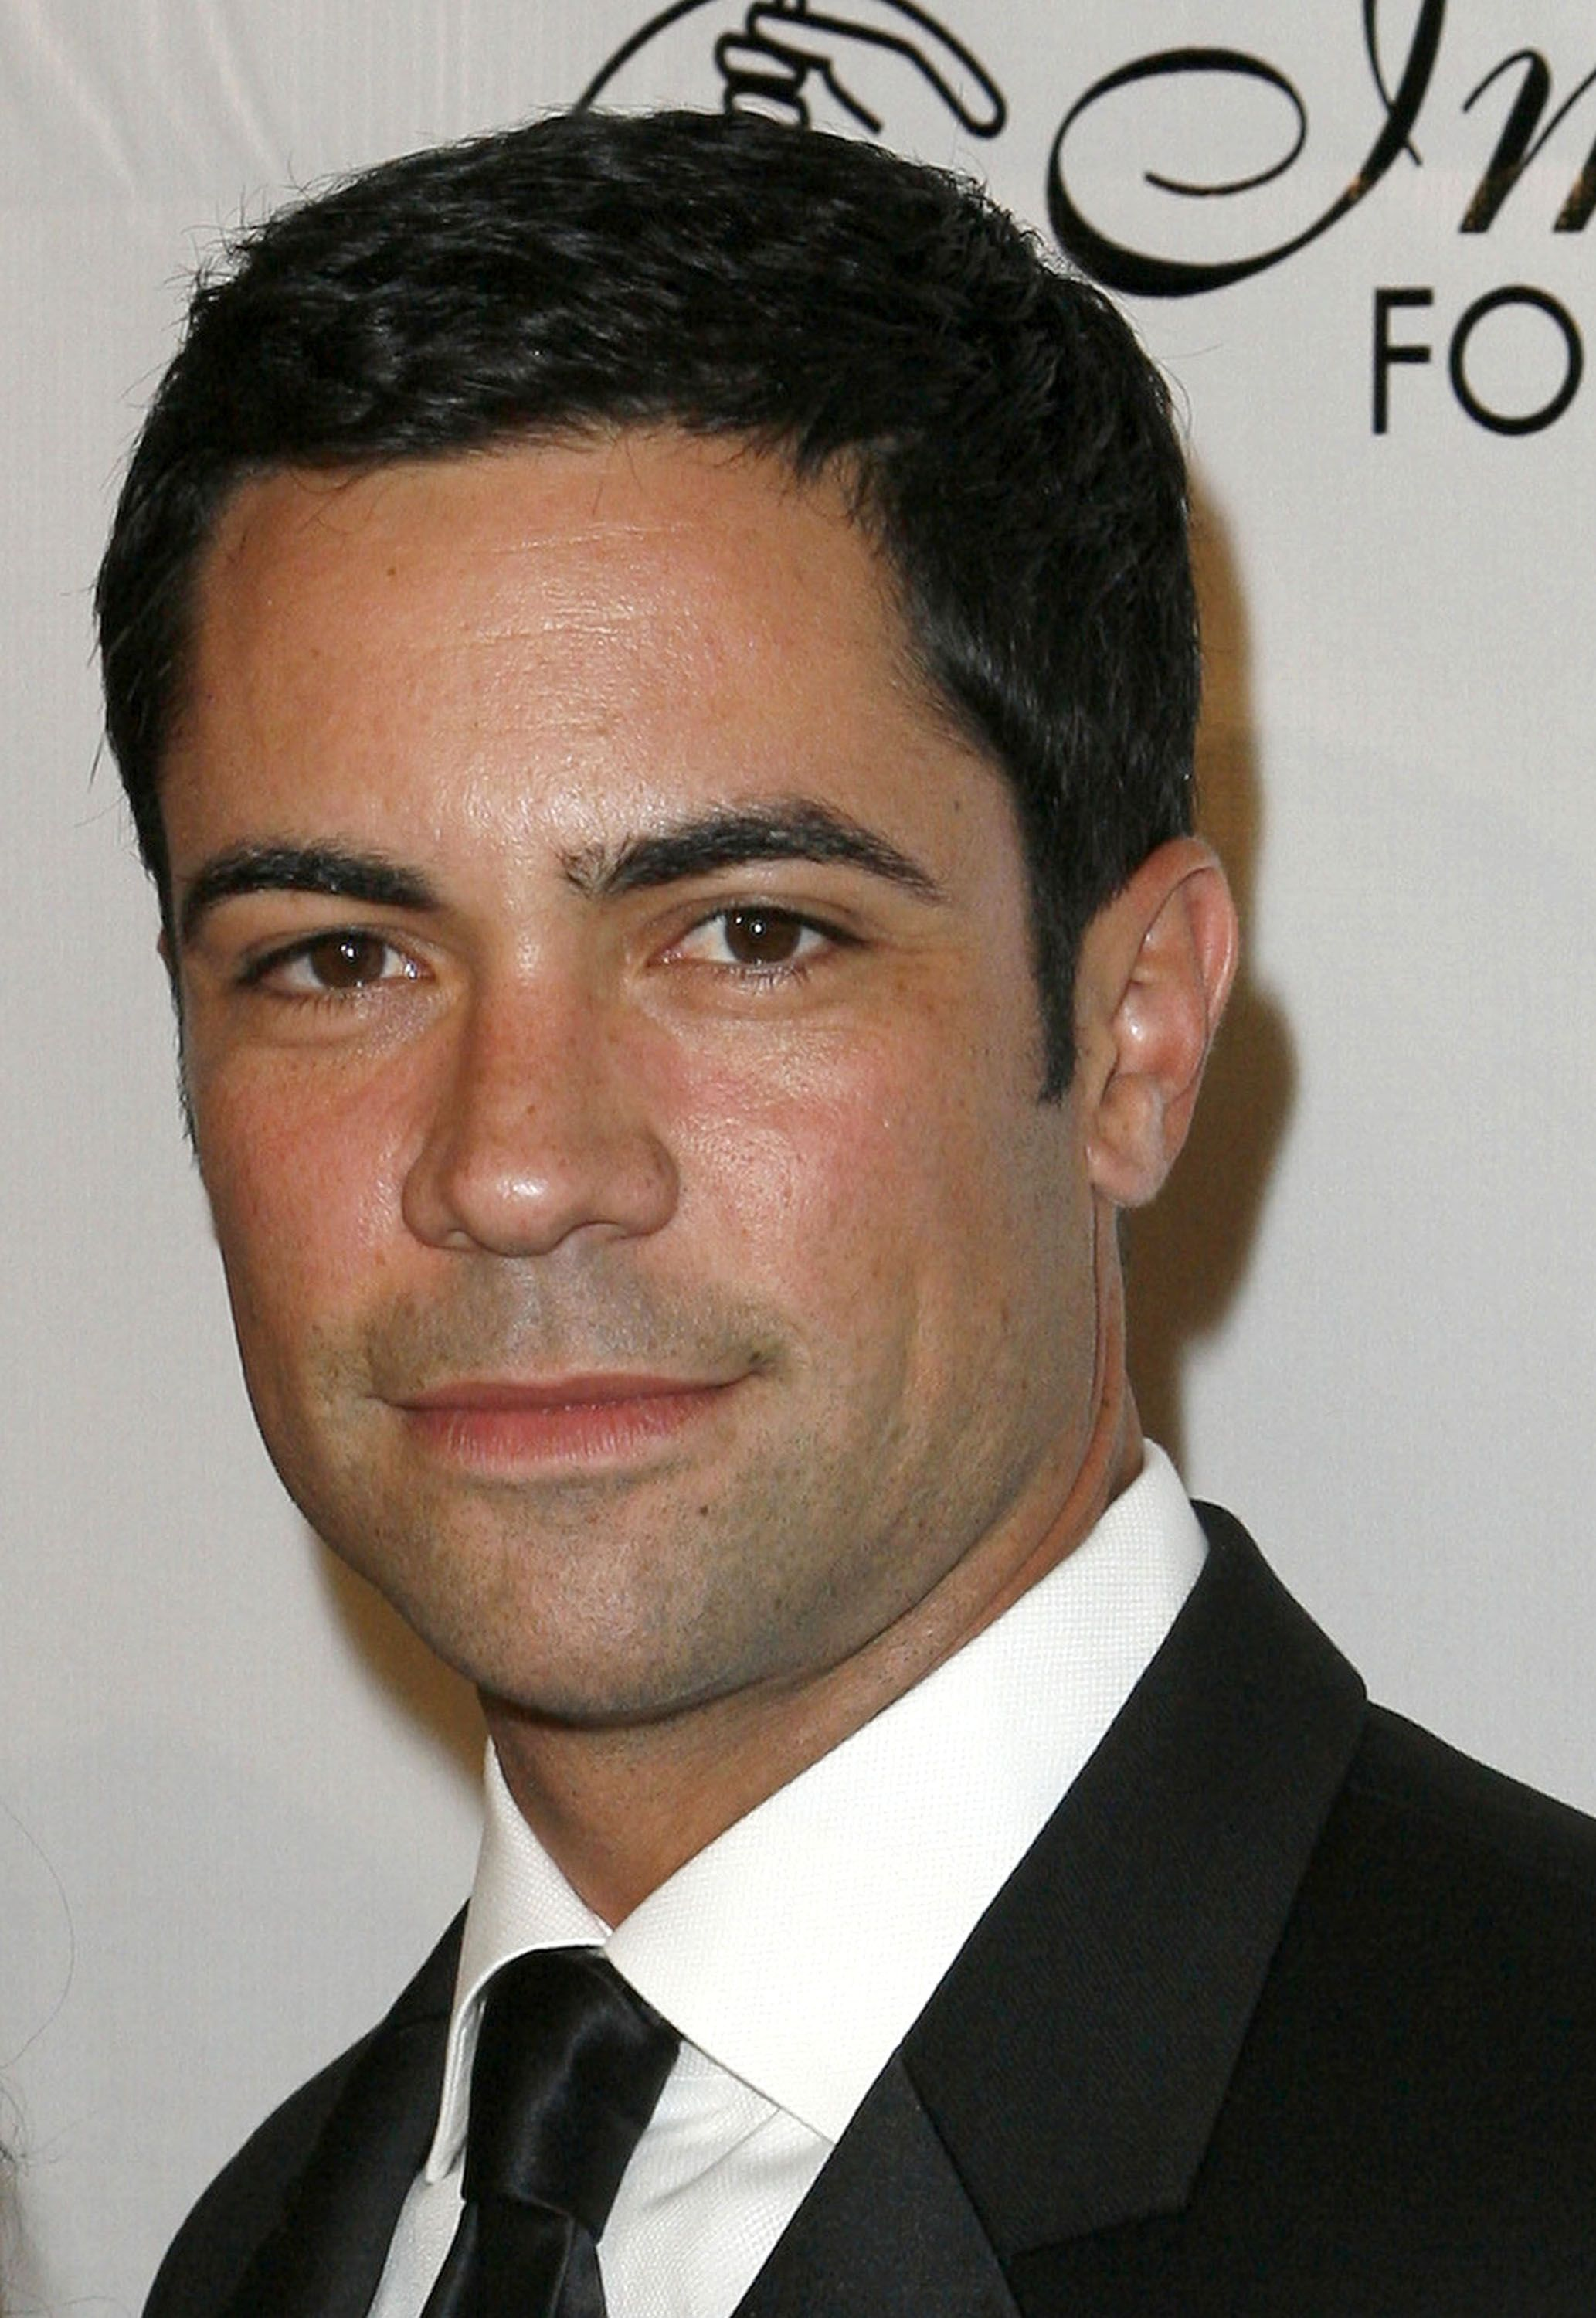 danny pino net worthdanny pino wife, danny pino burn notice, danny pino instagram, danny pino imdb, danny pino twitter, danny pino leaving law and order, danny pino wikipedia, danny pino left svu, danny pino svu, danny pino net worth, danny pino shirtless, danny pino law and order, danny pino scandal, danny pino family, danny pino 2015, danny pino y su esposa, danny pino ethnicity, danny pino facebook, danny pino married, danny pino siblings